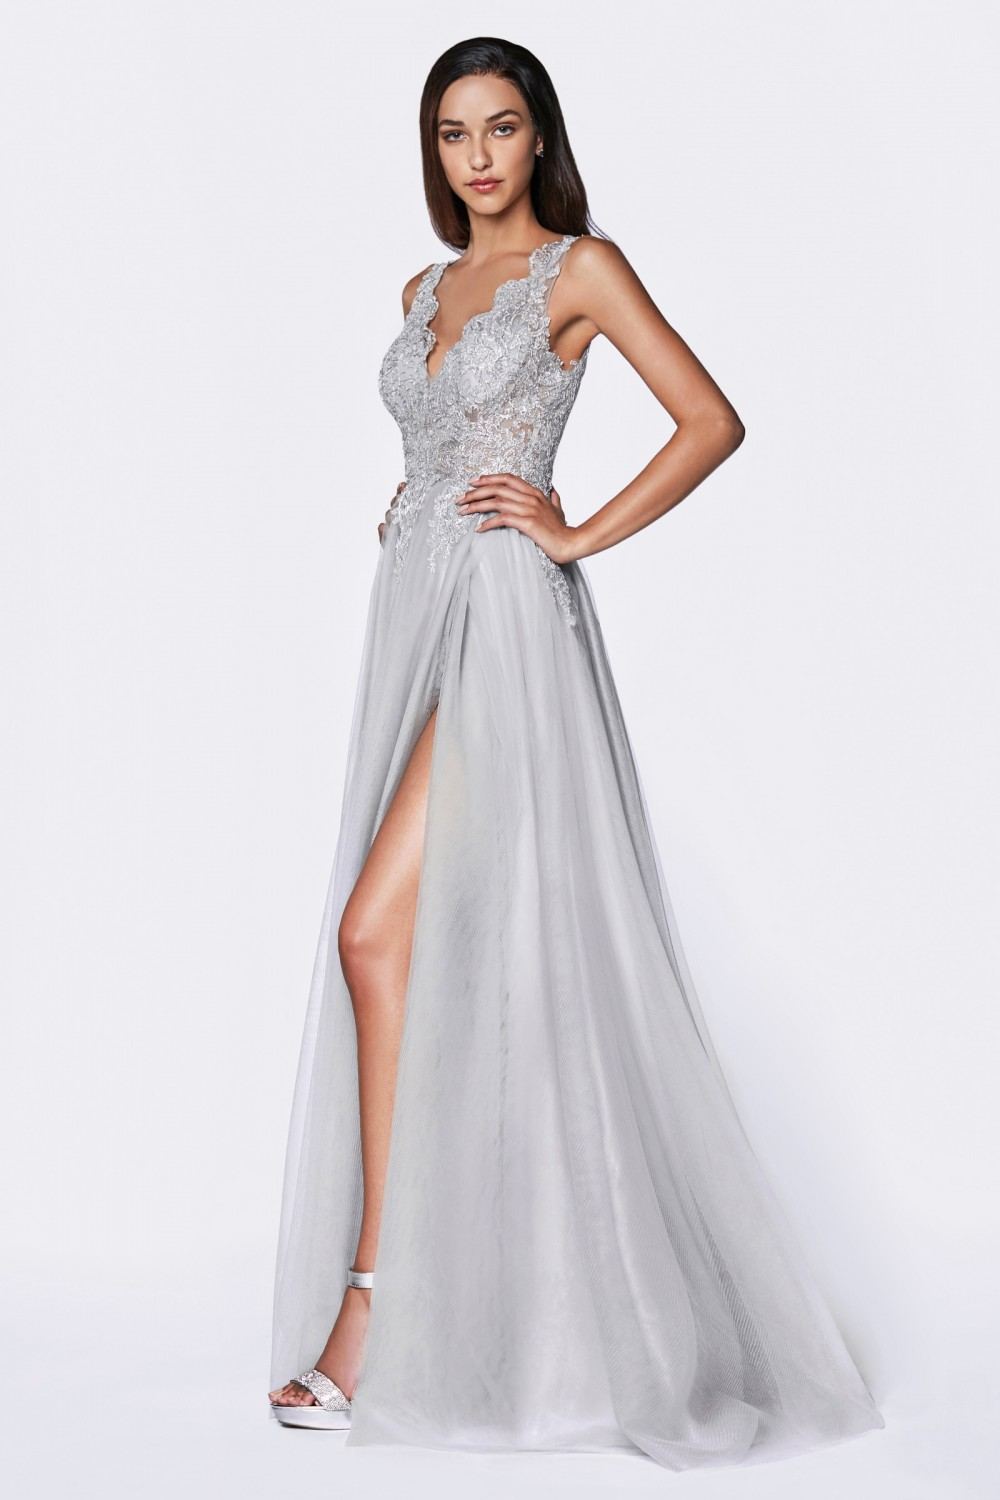 Silver A-line tulle gown with deep v-neckline and high slit.